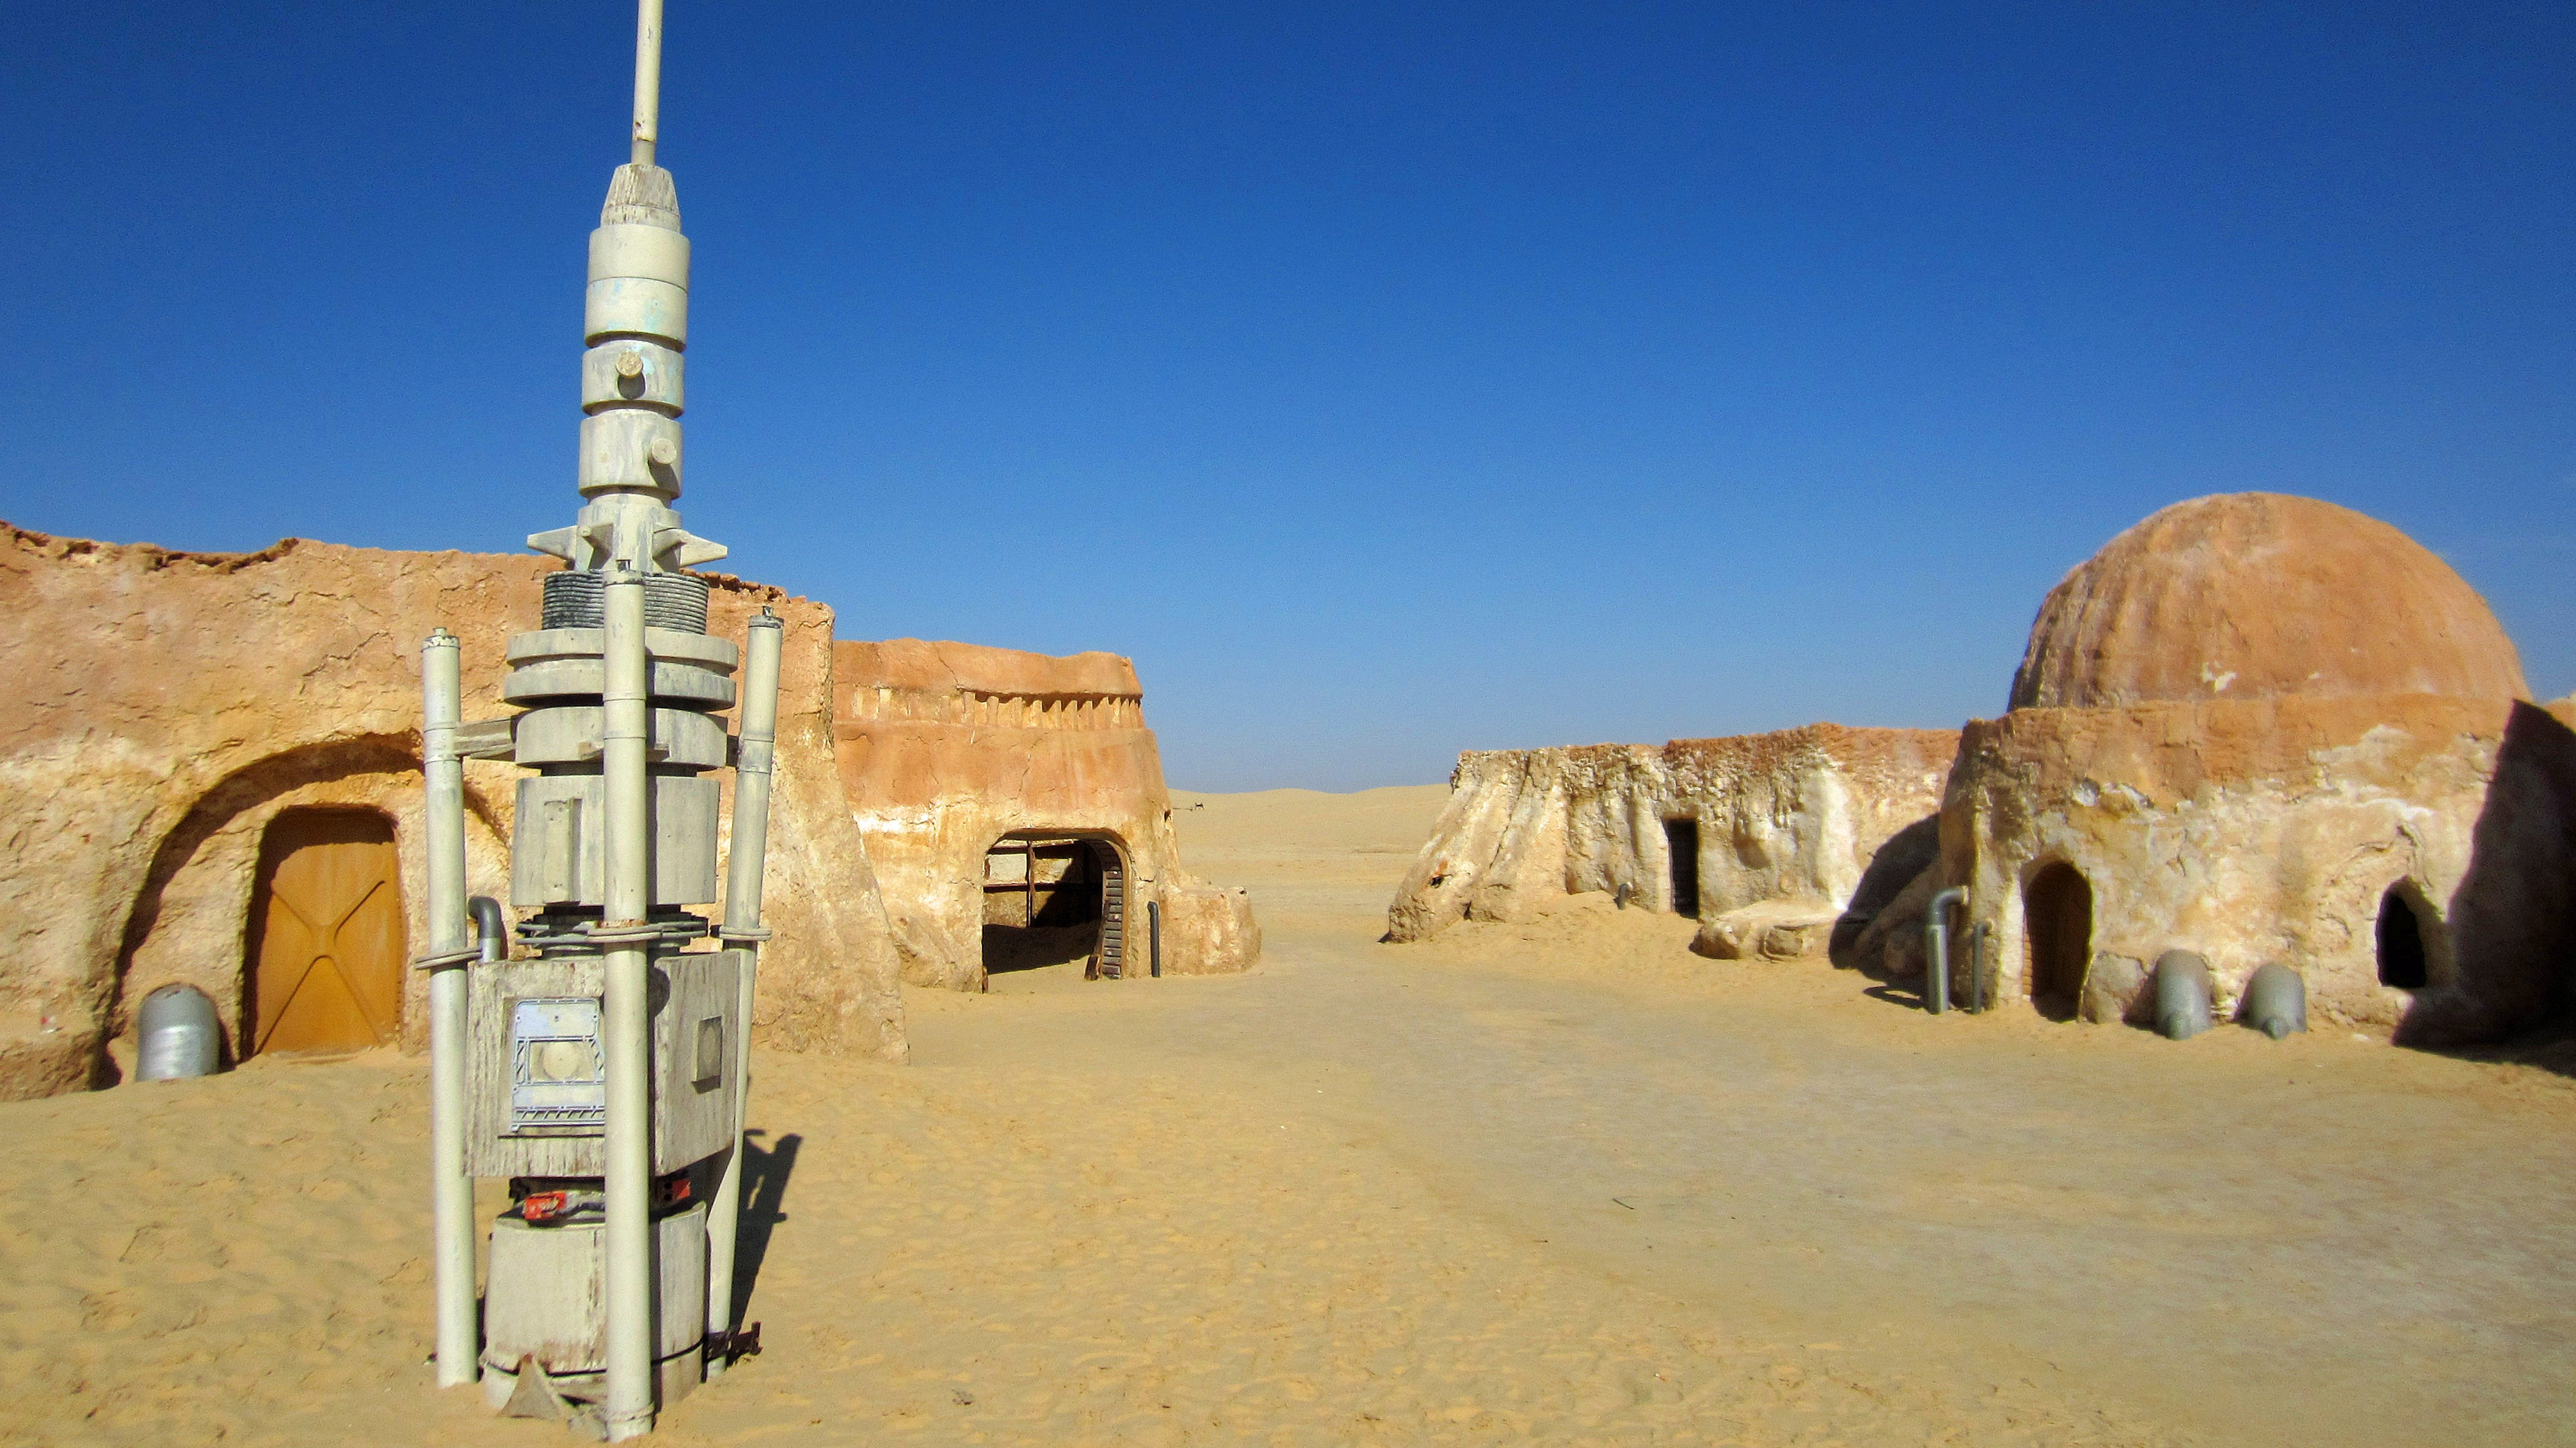 star wars desert is now part of isis conflict area